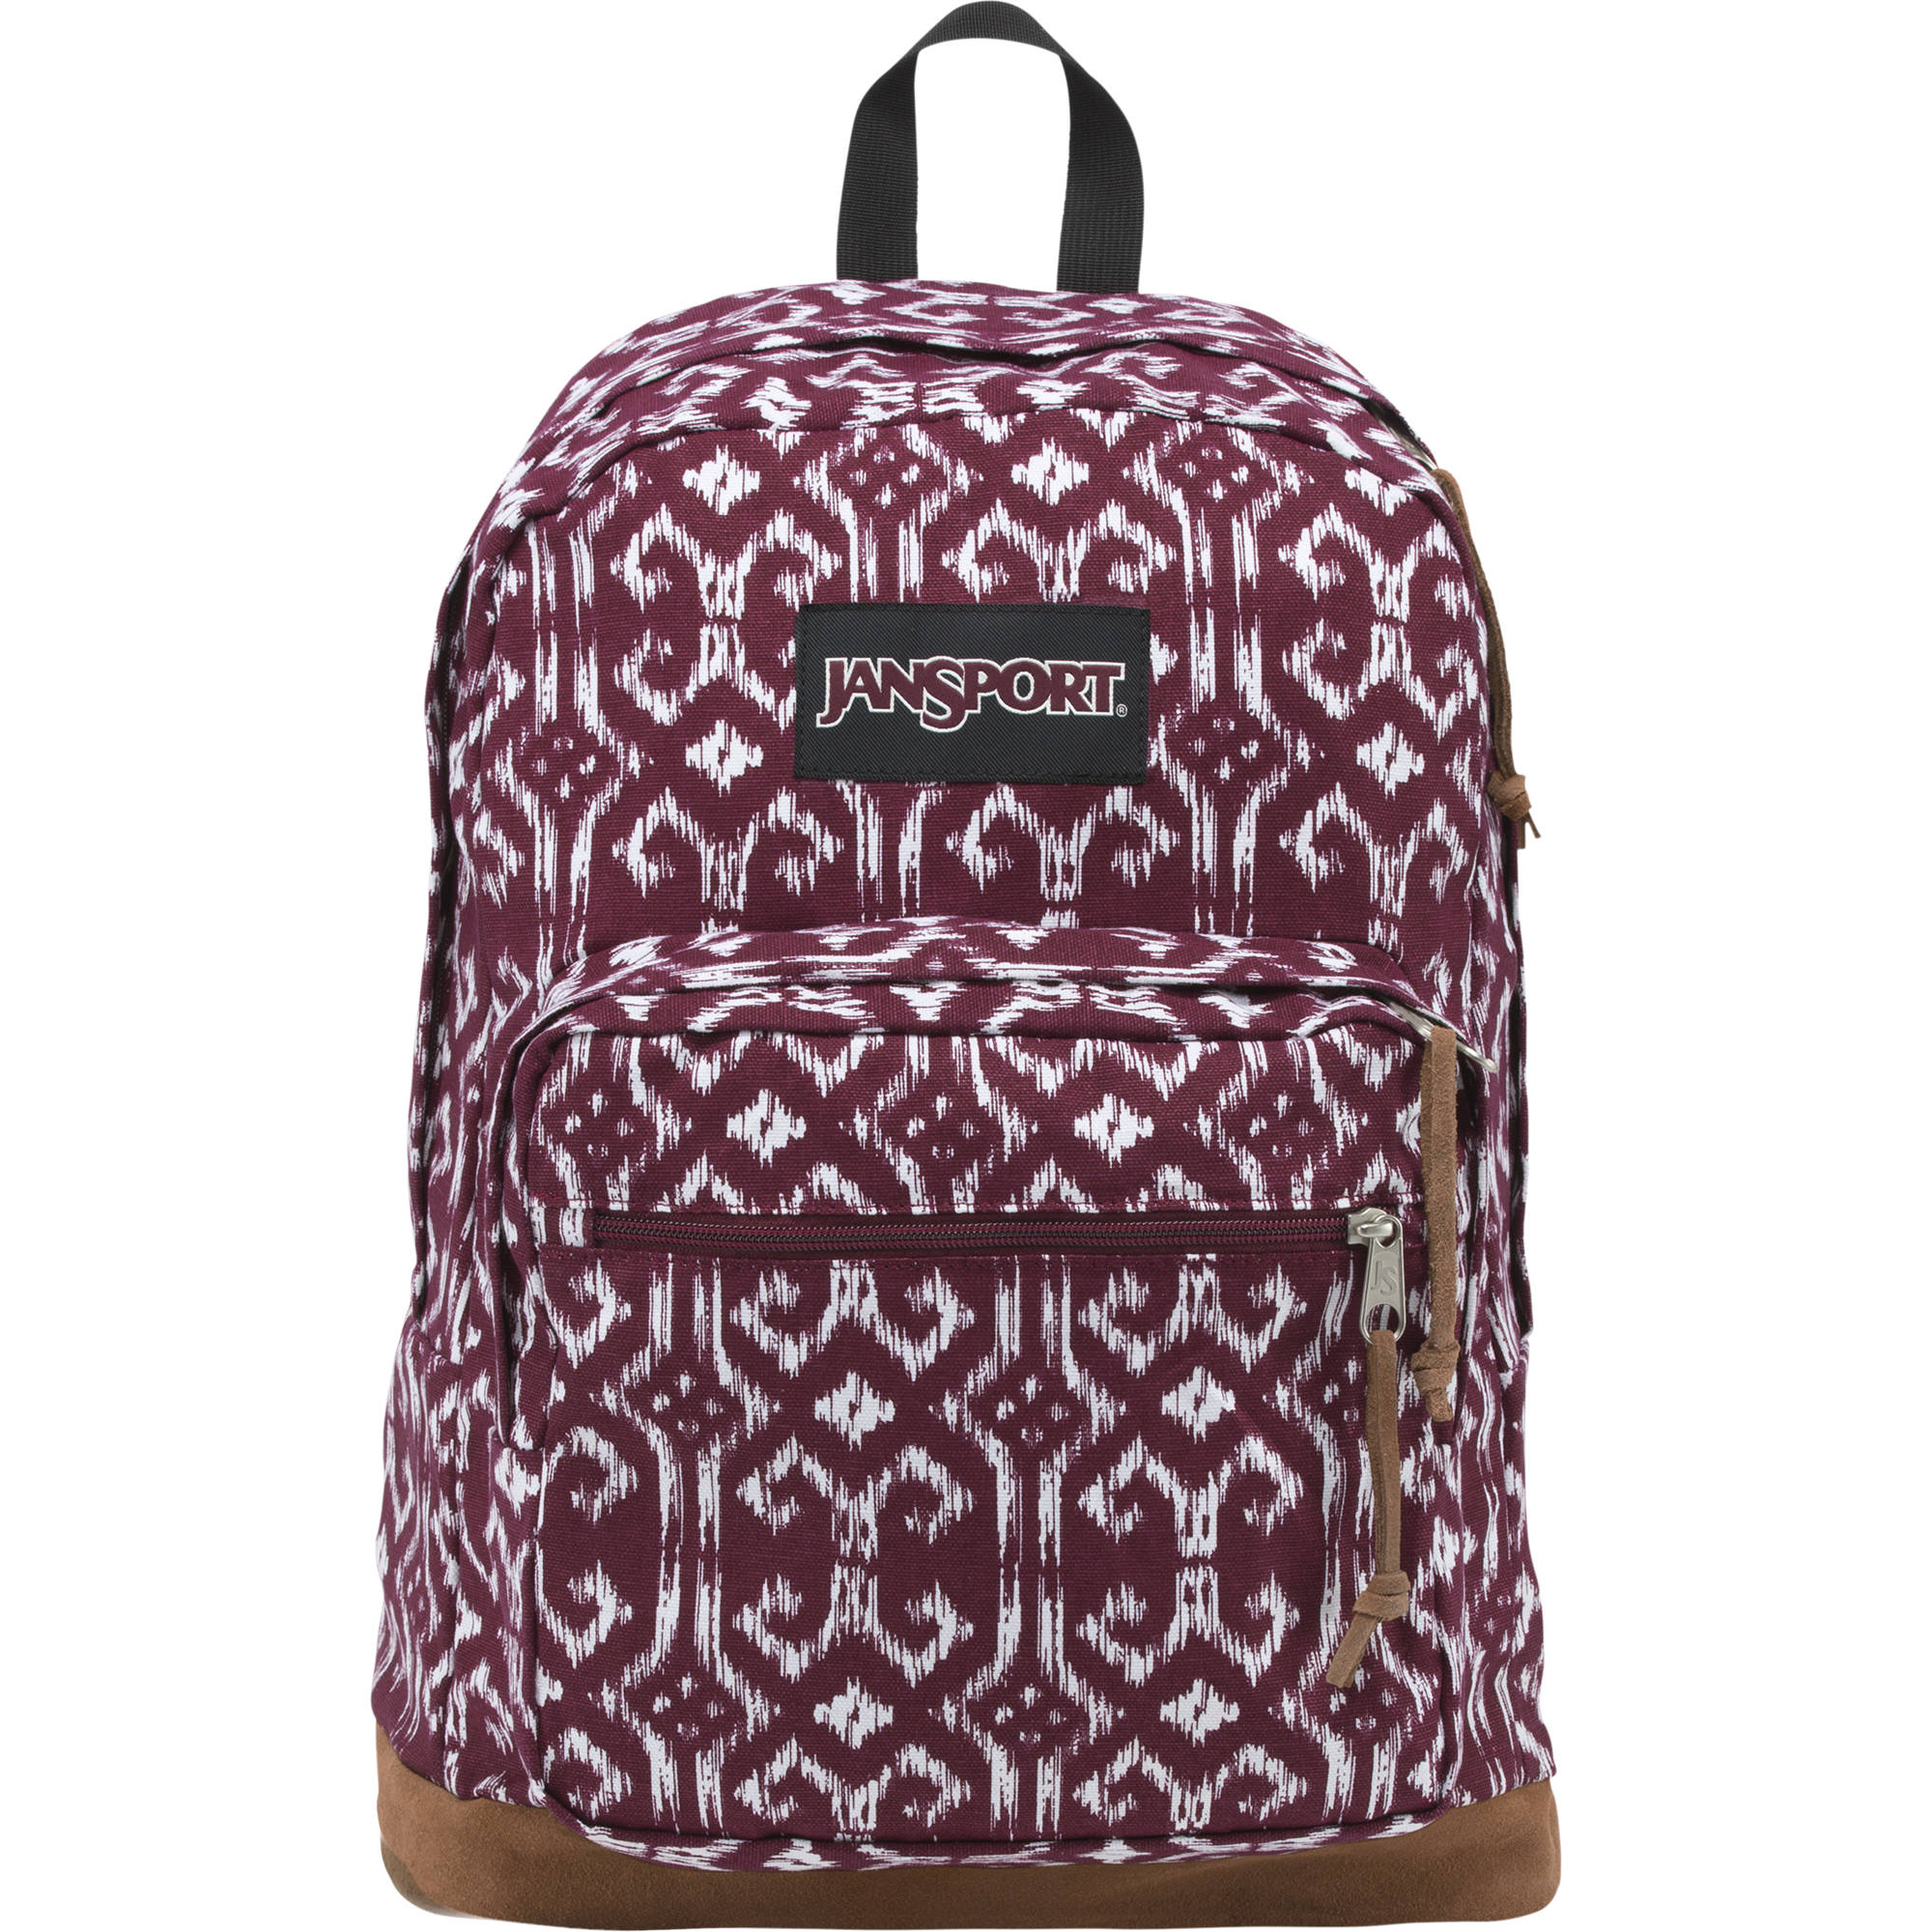 1c520387ee JanSport Right Pack Expressions 31L Backpack (Russet Red/Moroccan Ikat)